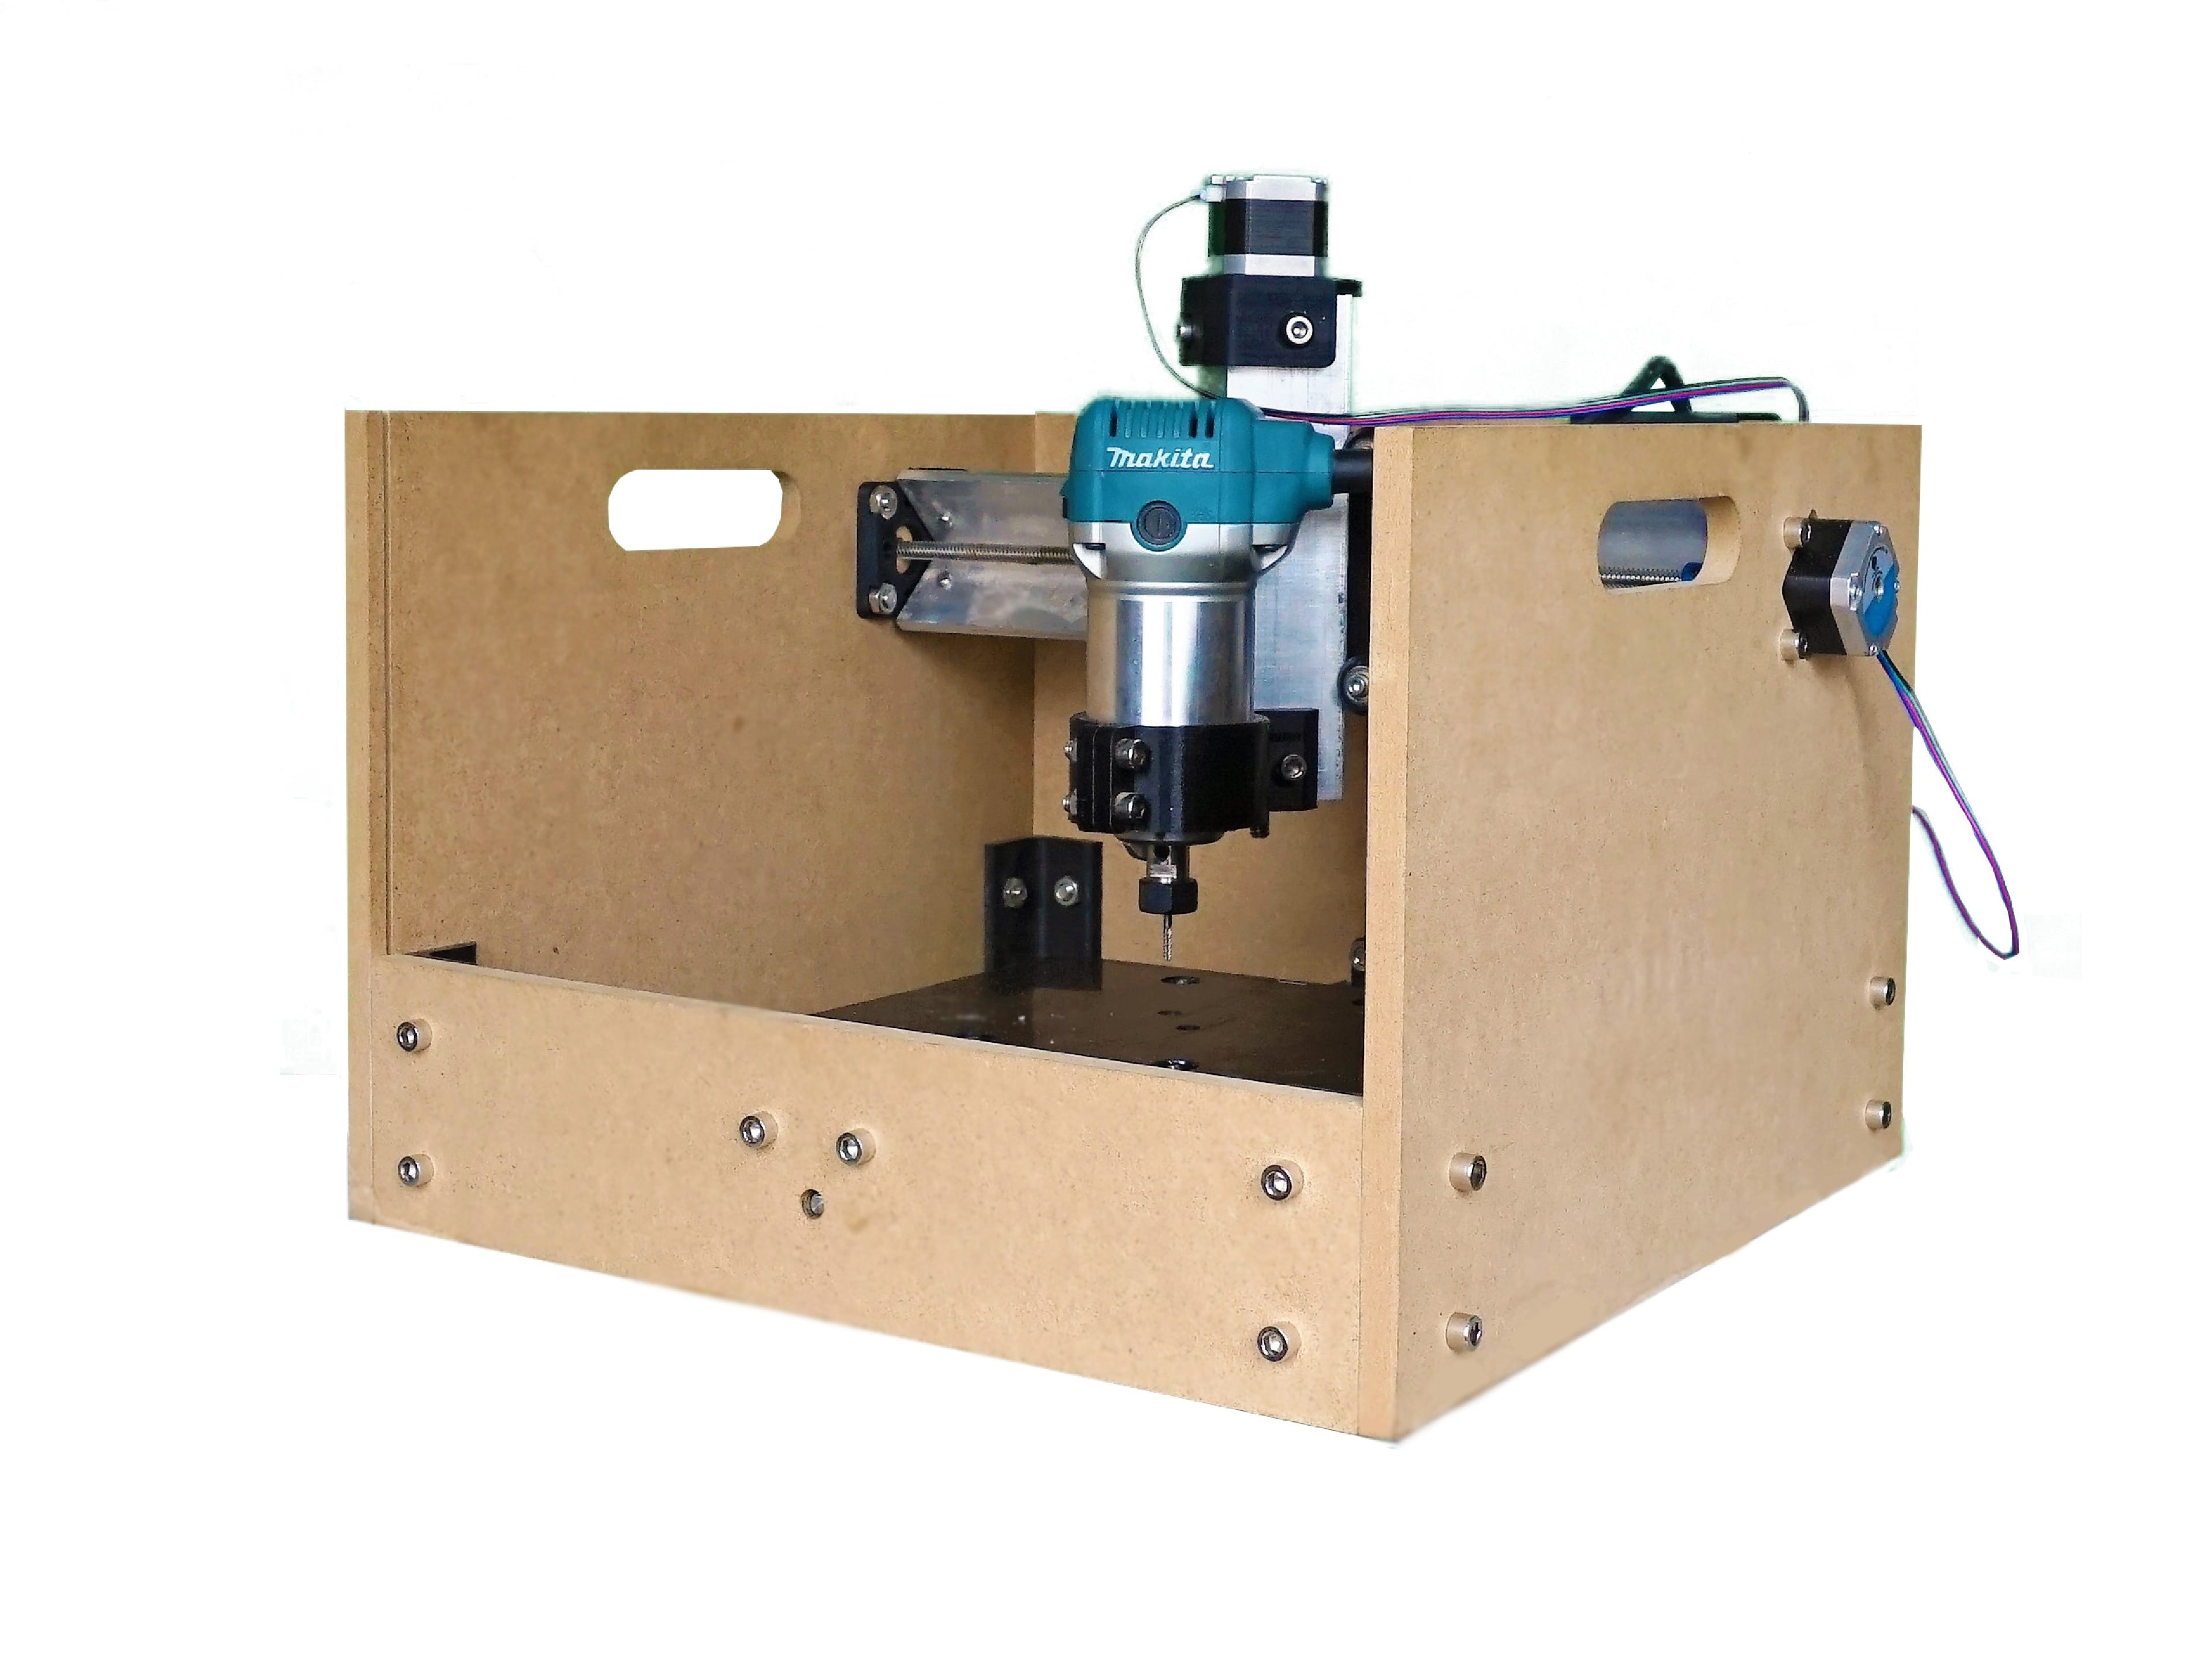 Sienci Mill One - Simple and Affordable Desktop CNC